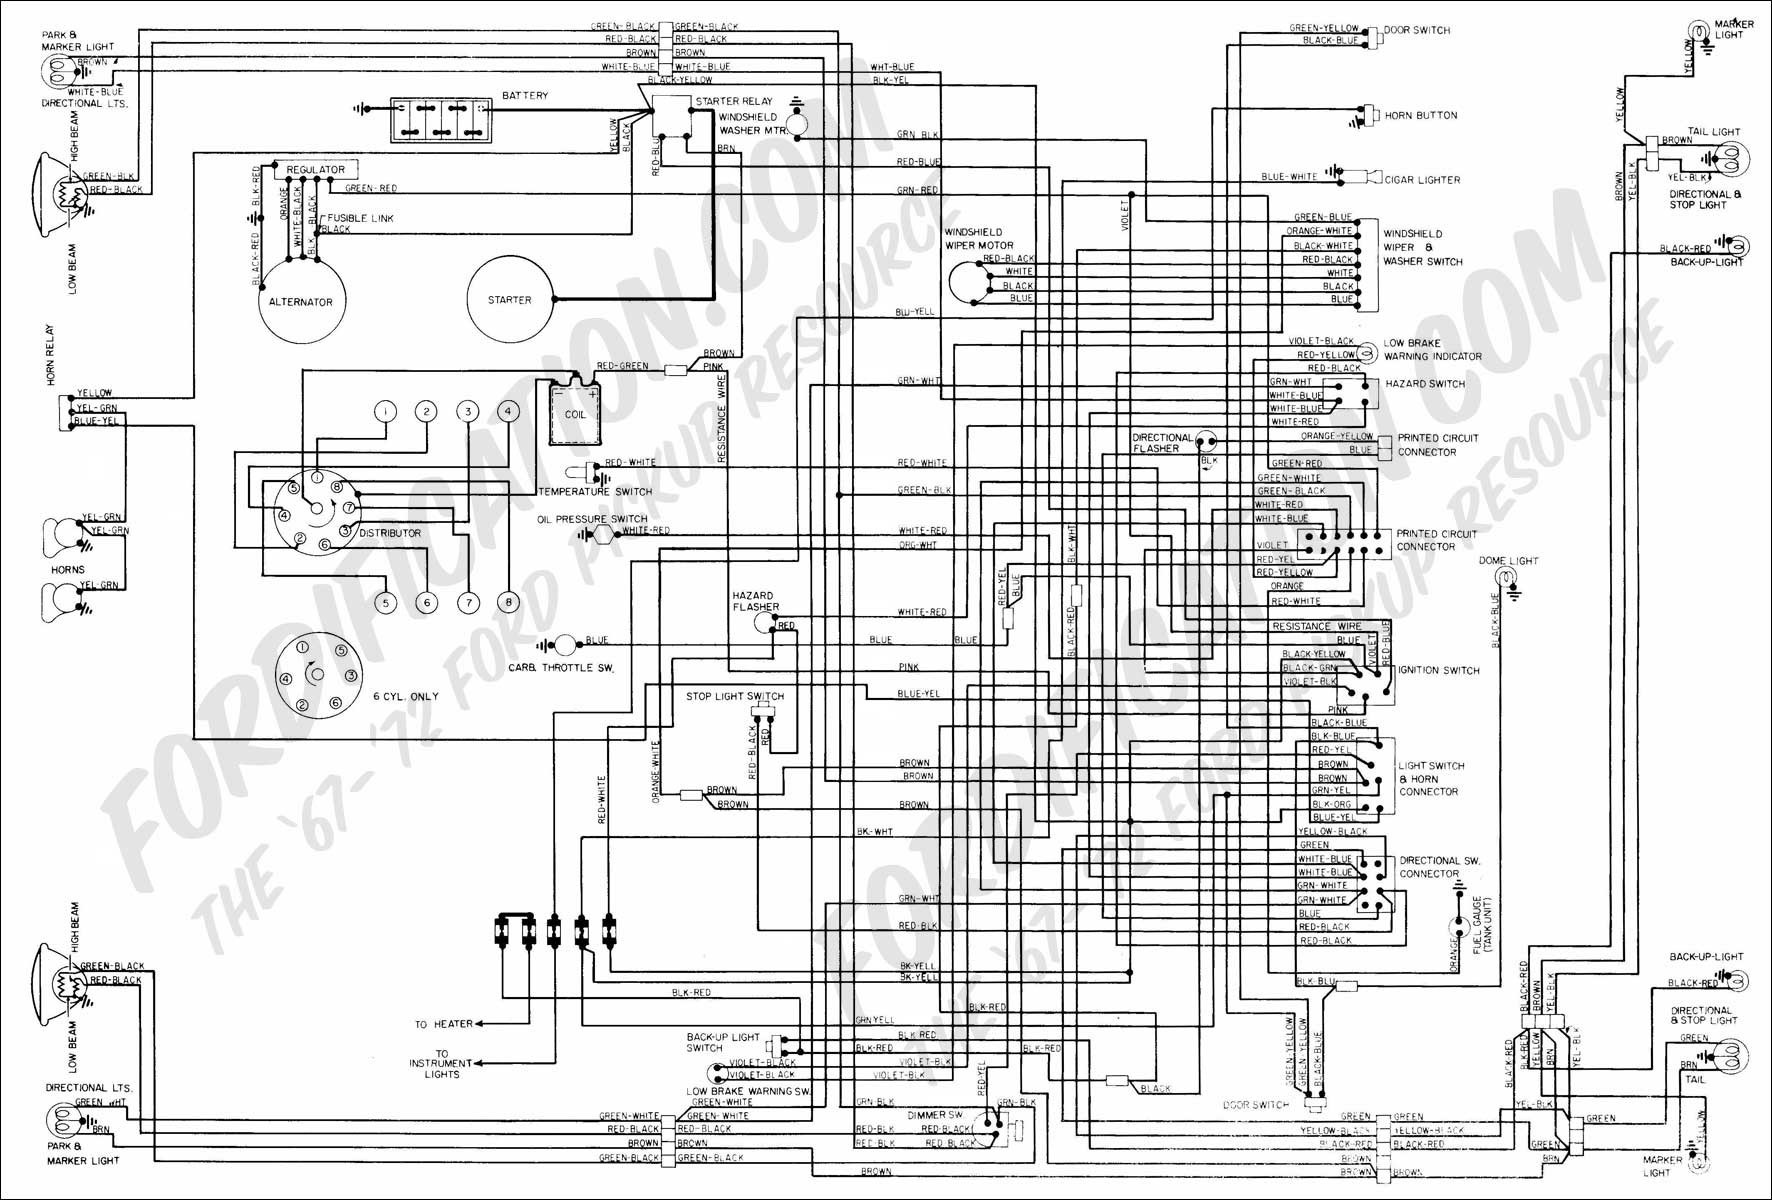 1999 ford f250 tail light wiring diagram | wiring diagram ... 1995 ford ranger tail light wiring diagram #14